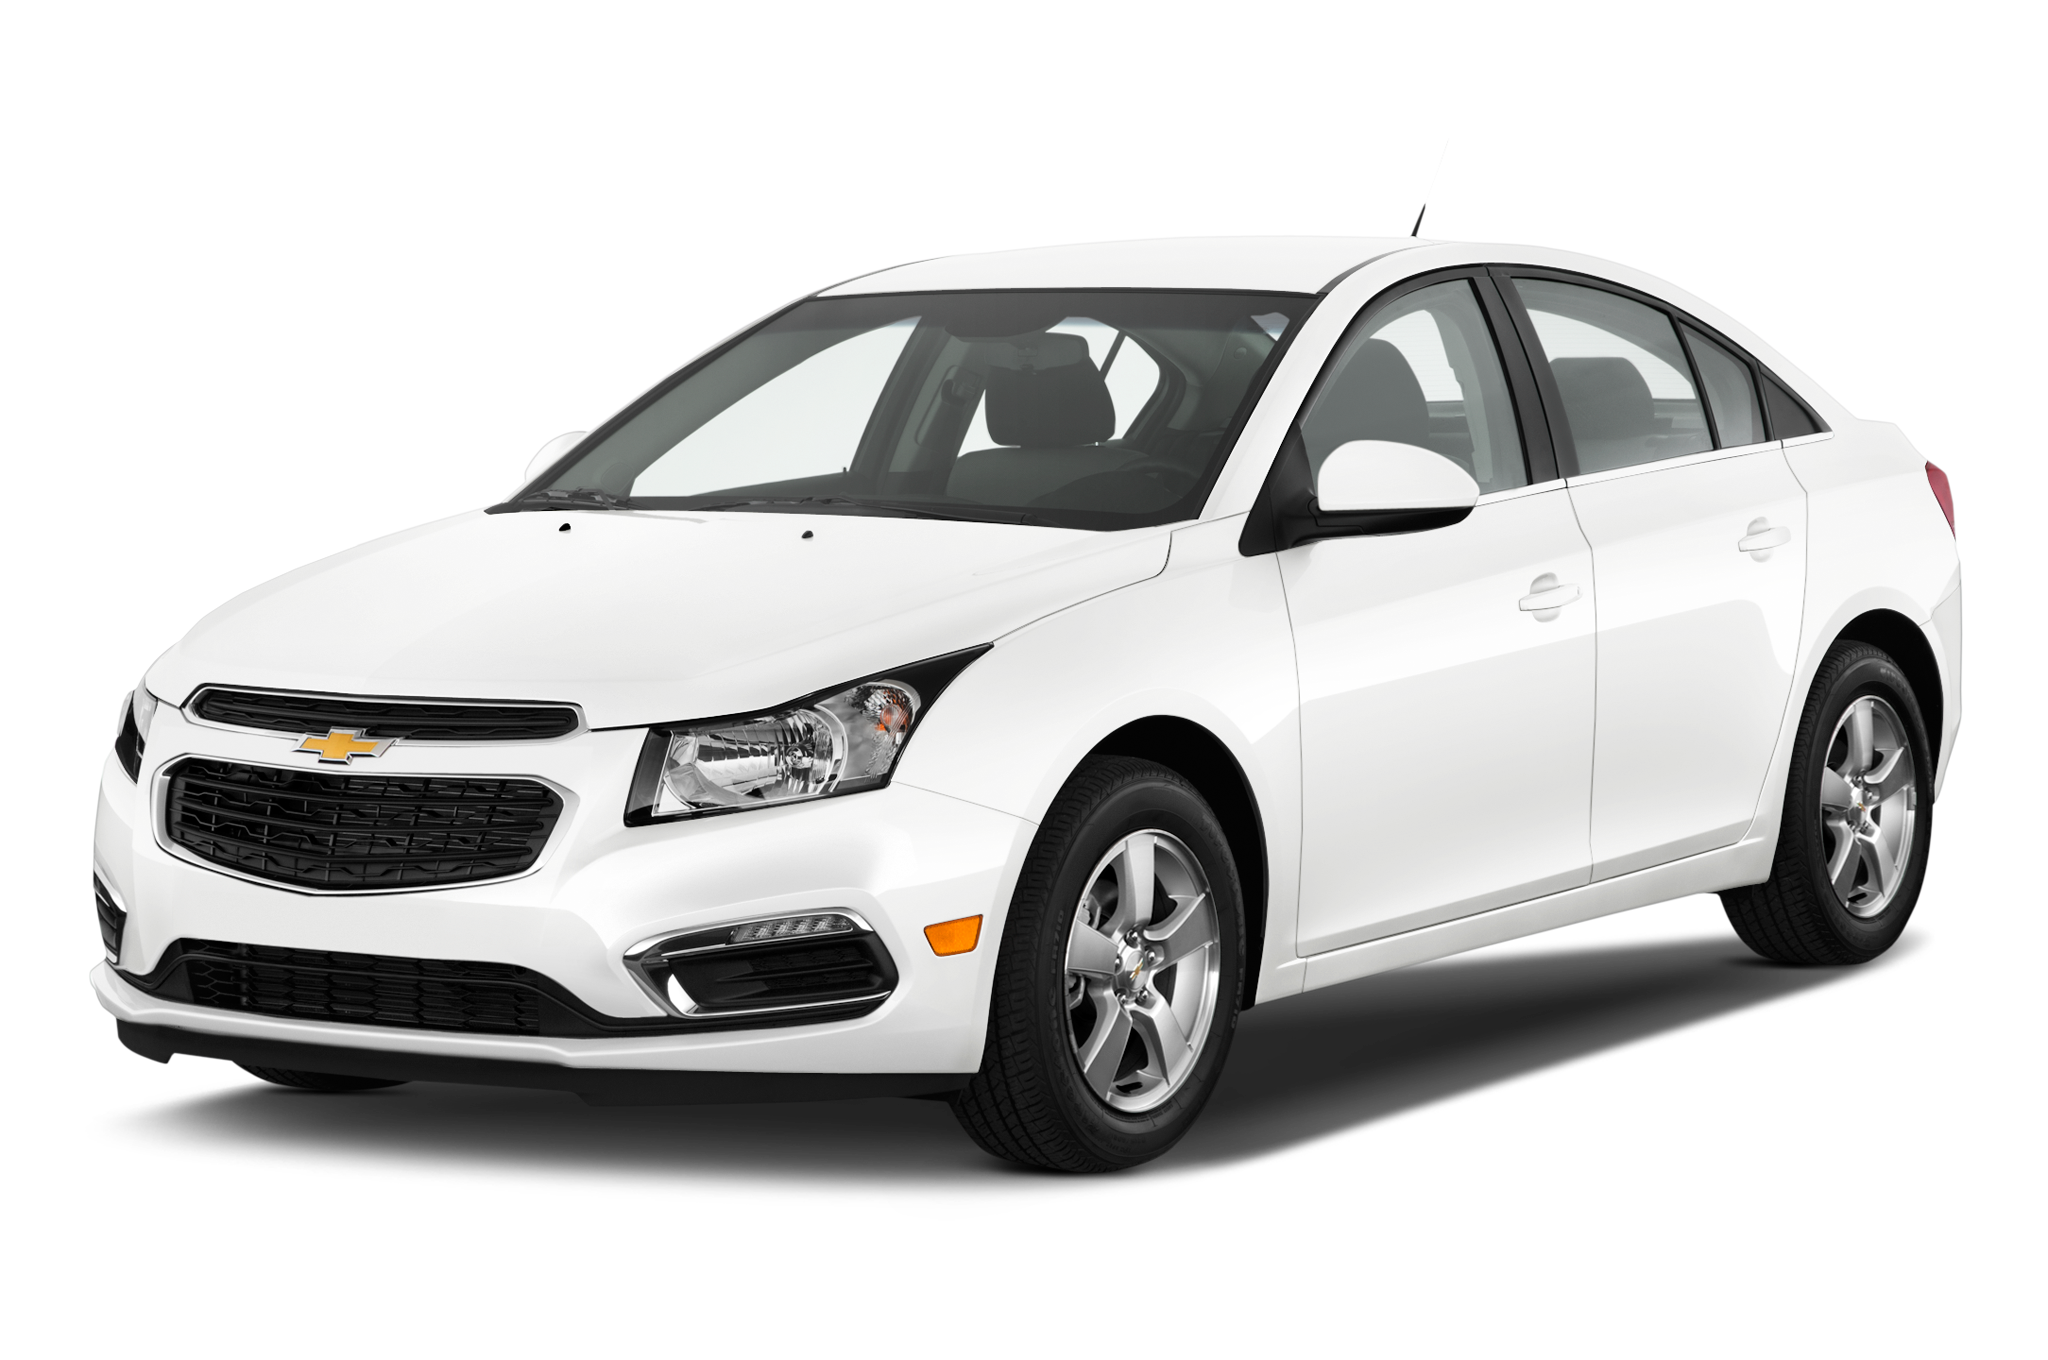 Chevrolet Cruze Owners Manual: Safety Belt Extender